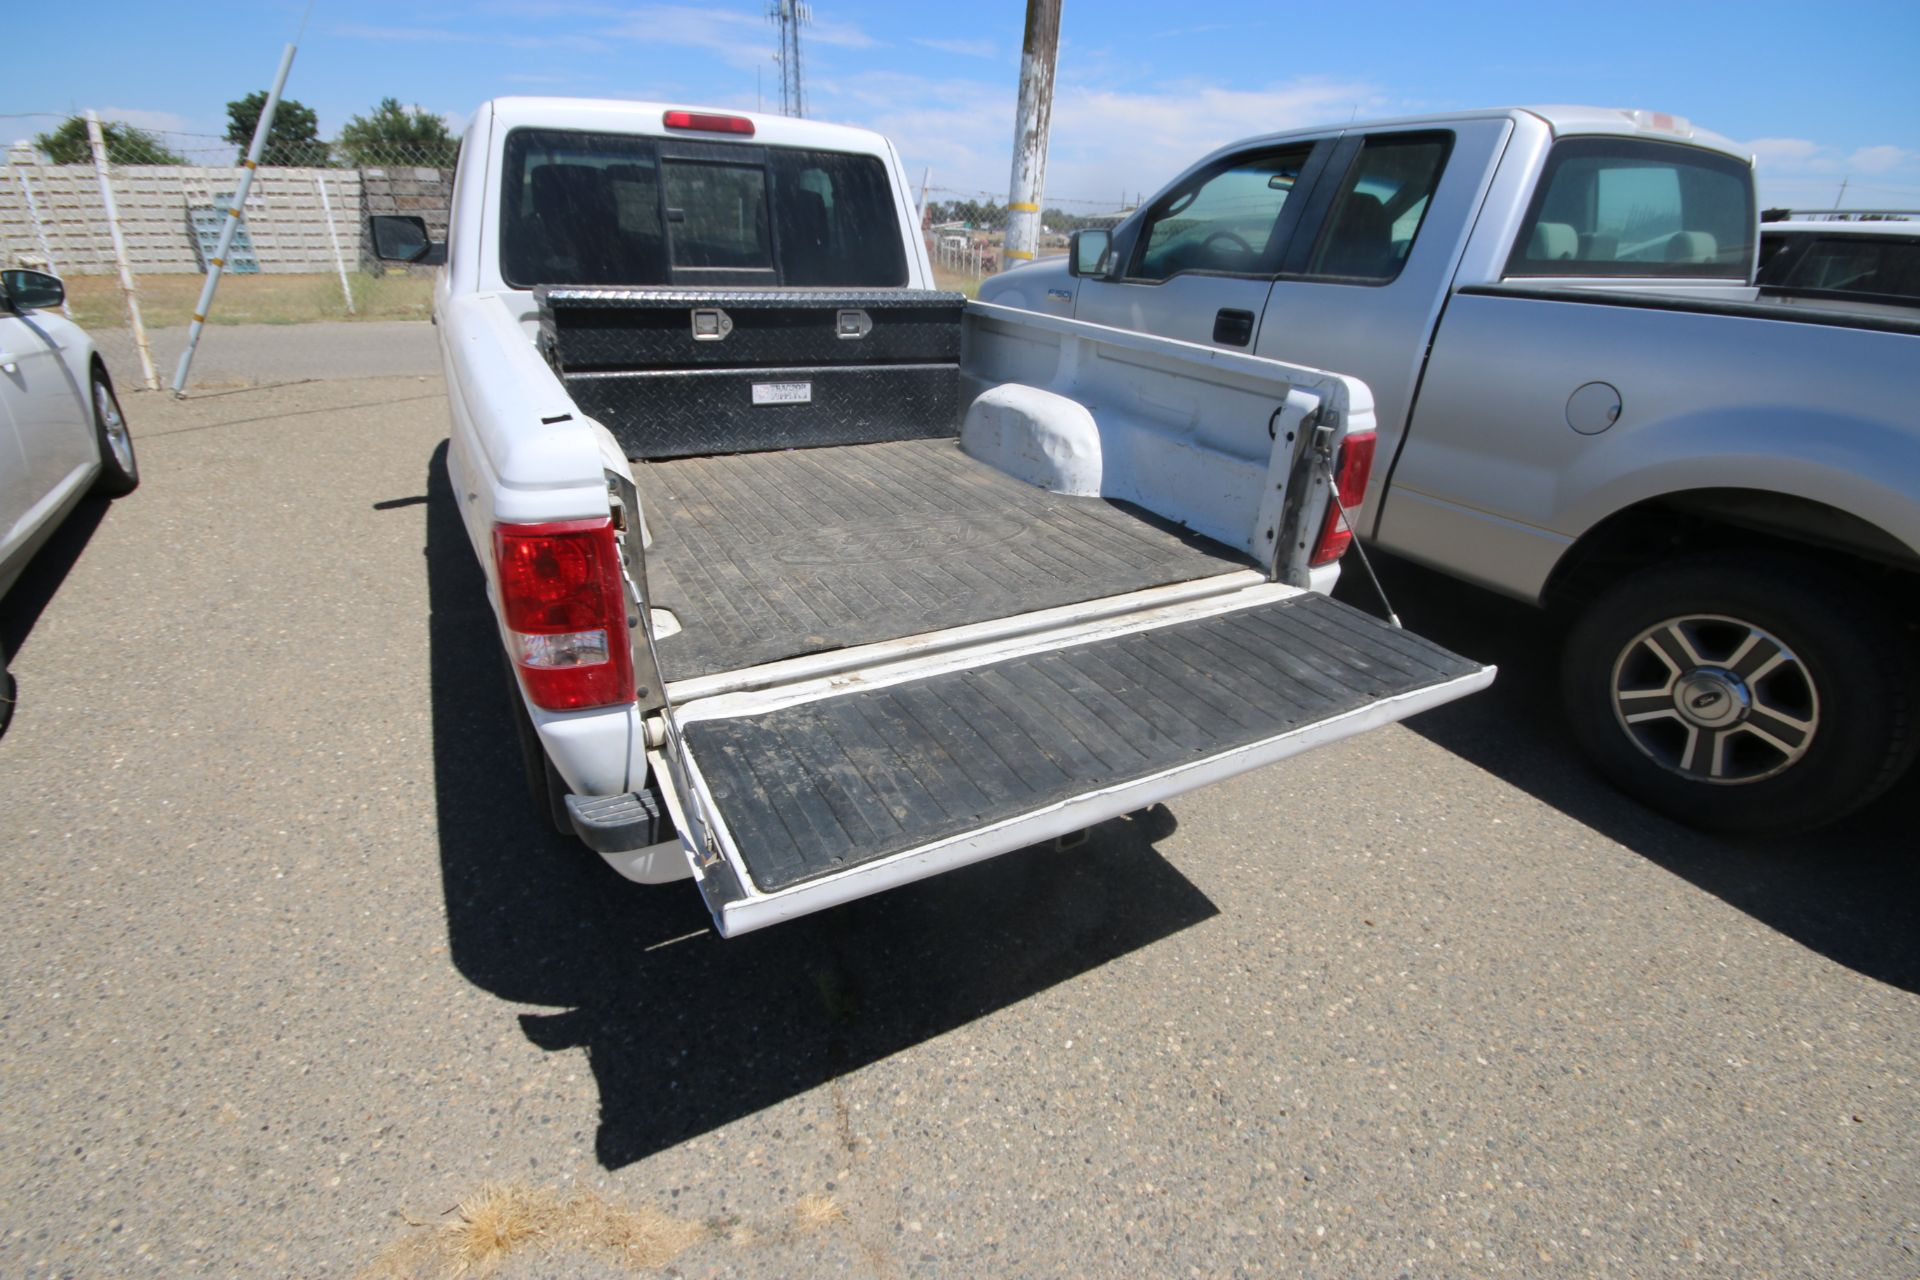 2011 White Ford Ranger Pick Up Truck, VIN #: 1FTLR4FE8BPA37482, with 160,443 Miles, Started Up as of - Image 6 of 24